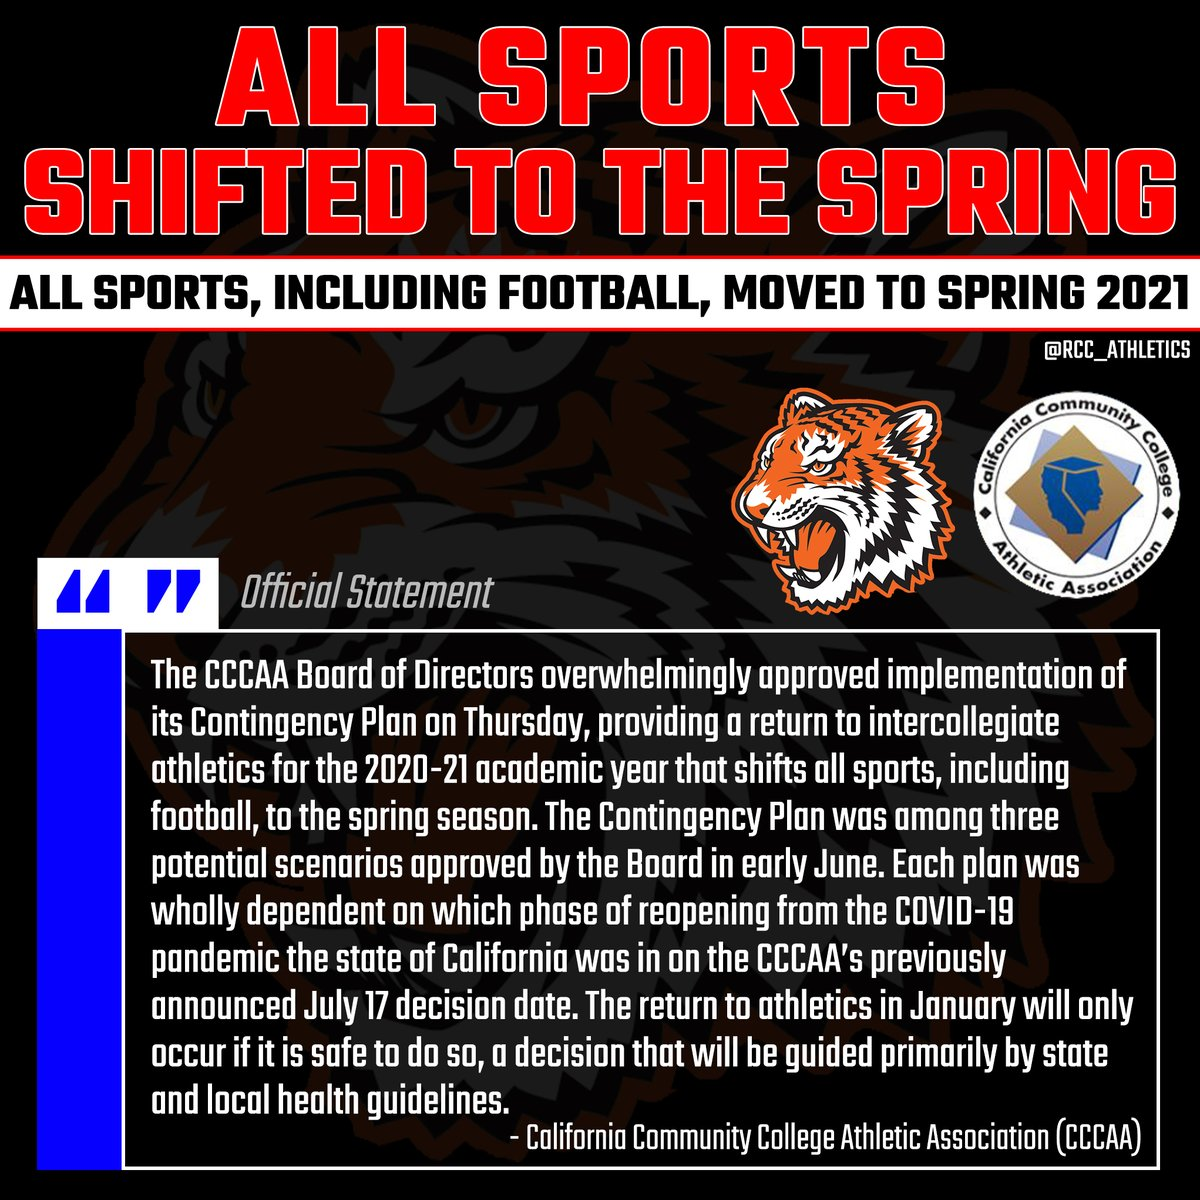 The @CCCAASports Board of Directors overwhelmingly approved implementation of its Contingency Plan, thus moving ALL FALL SPORTS, including football, to the spring season. Read more about the details at https://t.co/V7Gnsfc6gq or https://t.co/iRs0UwRjq3. #TheCommunitysCollege https://t.co/7goa4sDN6M